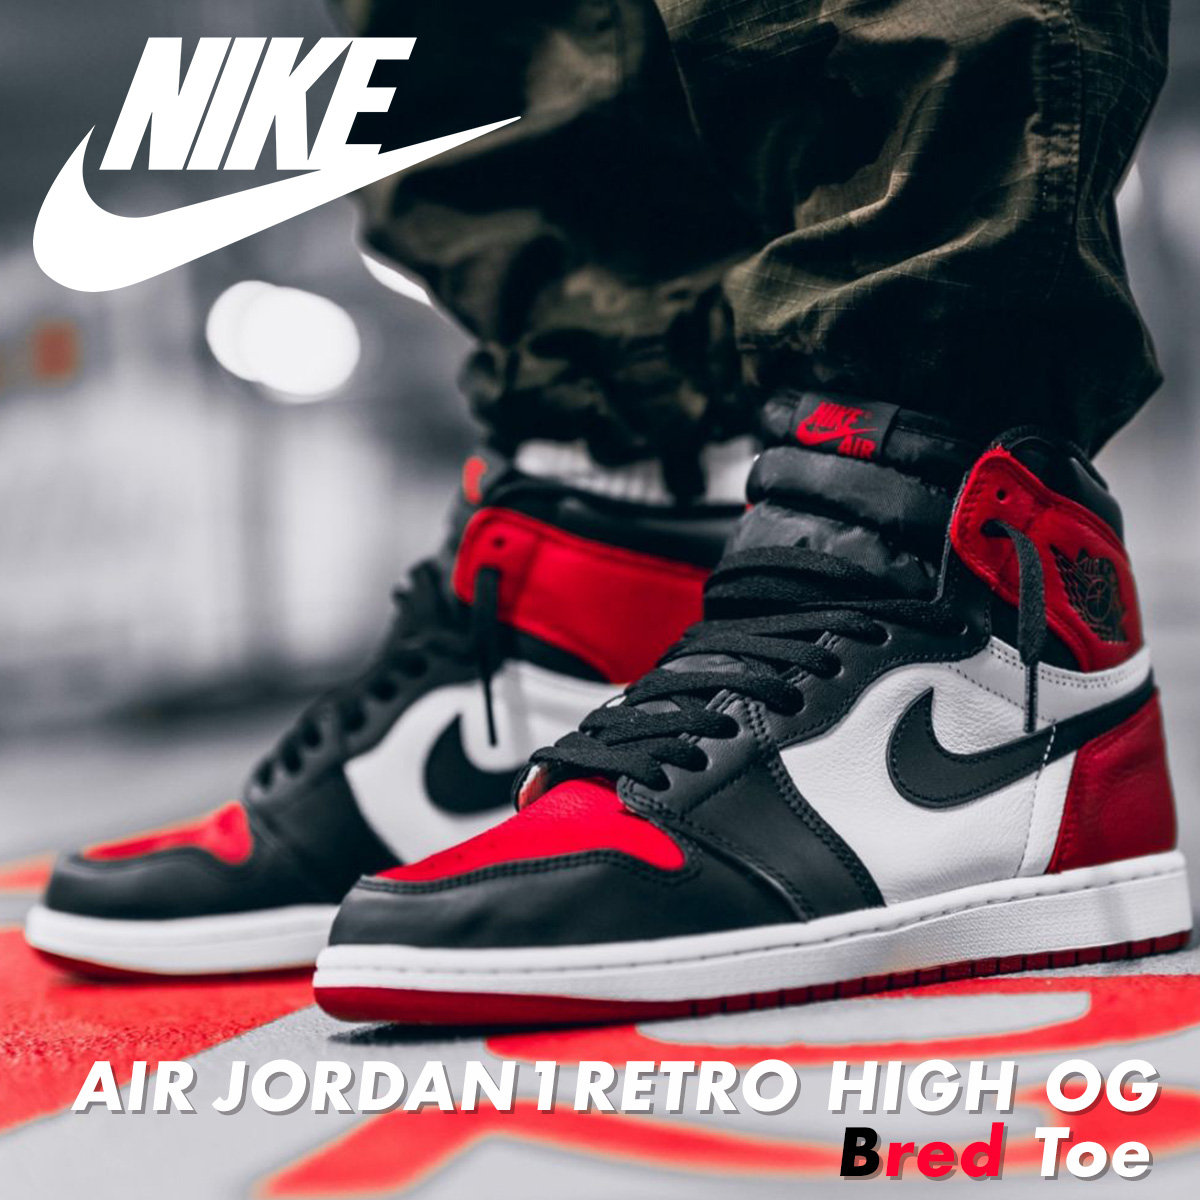 purchase cheap 452cb c3040 NIKE AIR JORDAN 1 RETRO HIGH OG BRED TOE Nike Air Jordan 1 nostalgic high  sneakers men 555,088-610 red [is going to be received reservation product  ...